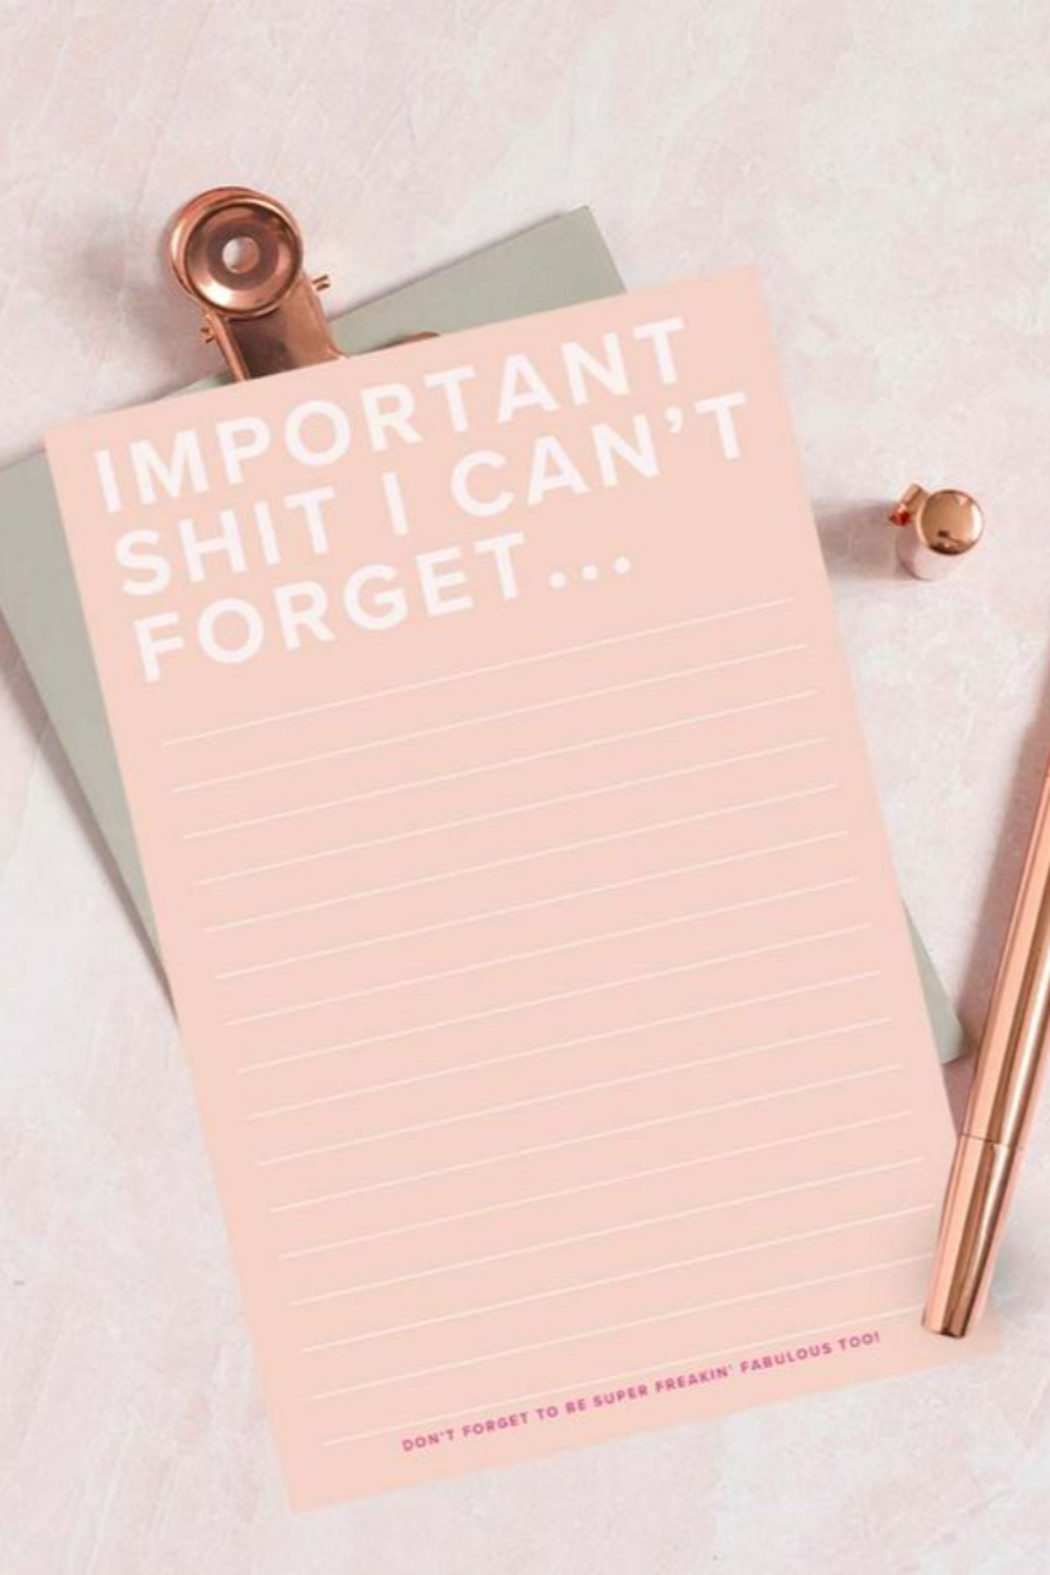 Lyn -Maree's Important $#!T I Can't Forget - Funny Blush Notepad - Main Image